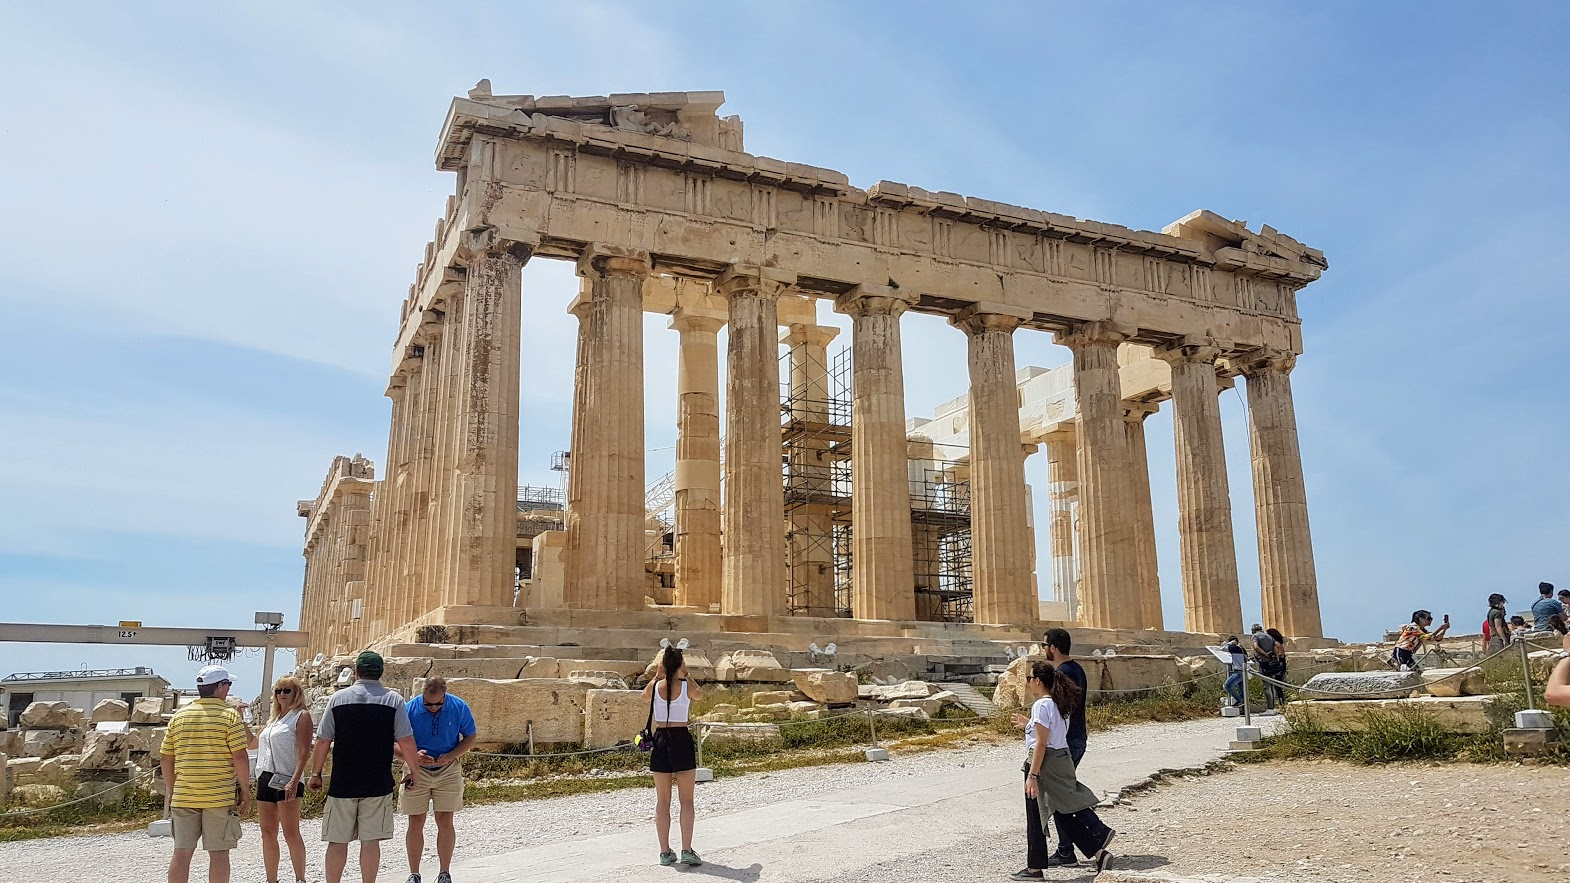 Greece tourist attractions - The Acropolis in Athens